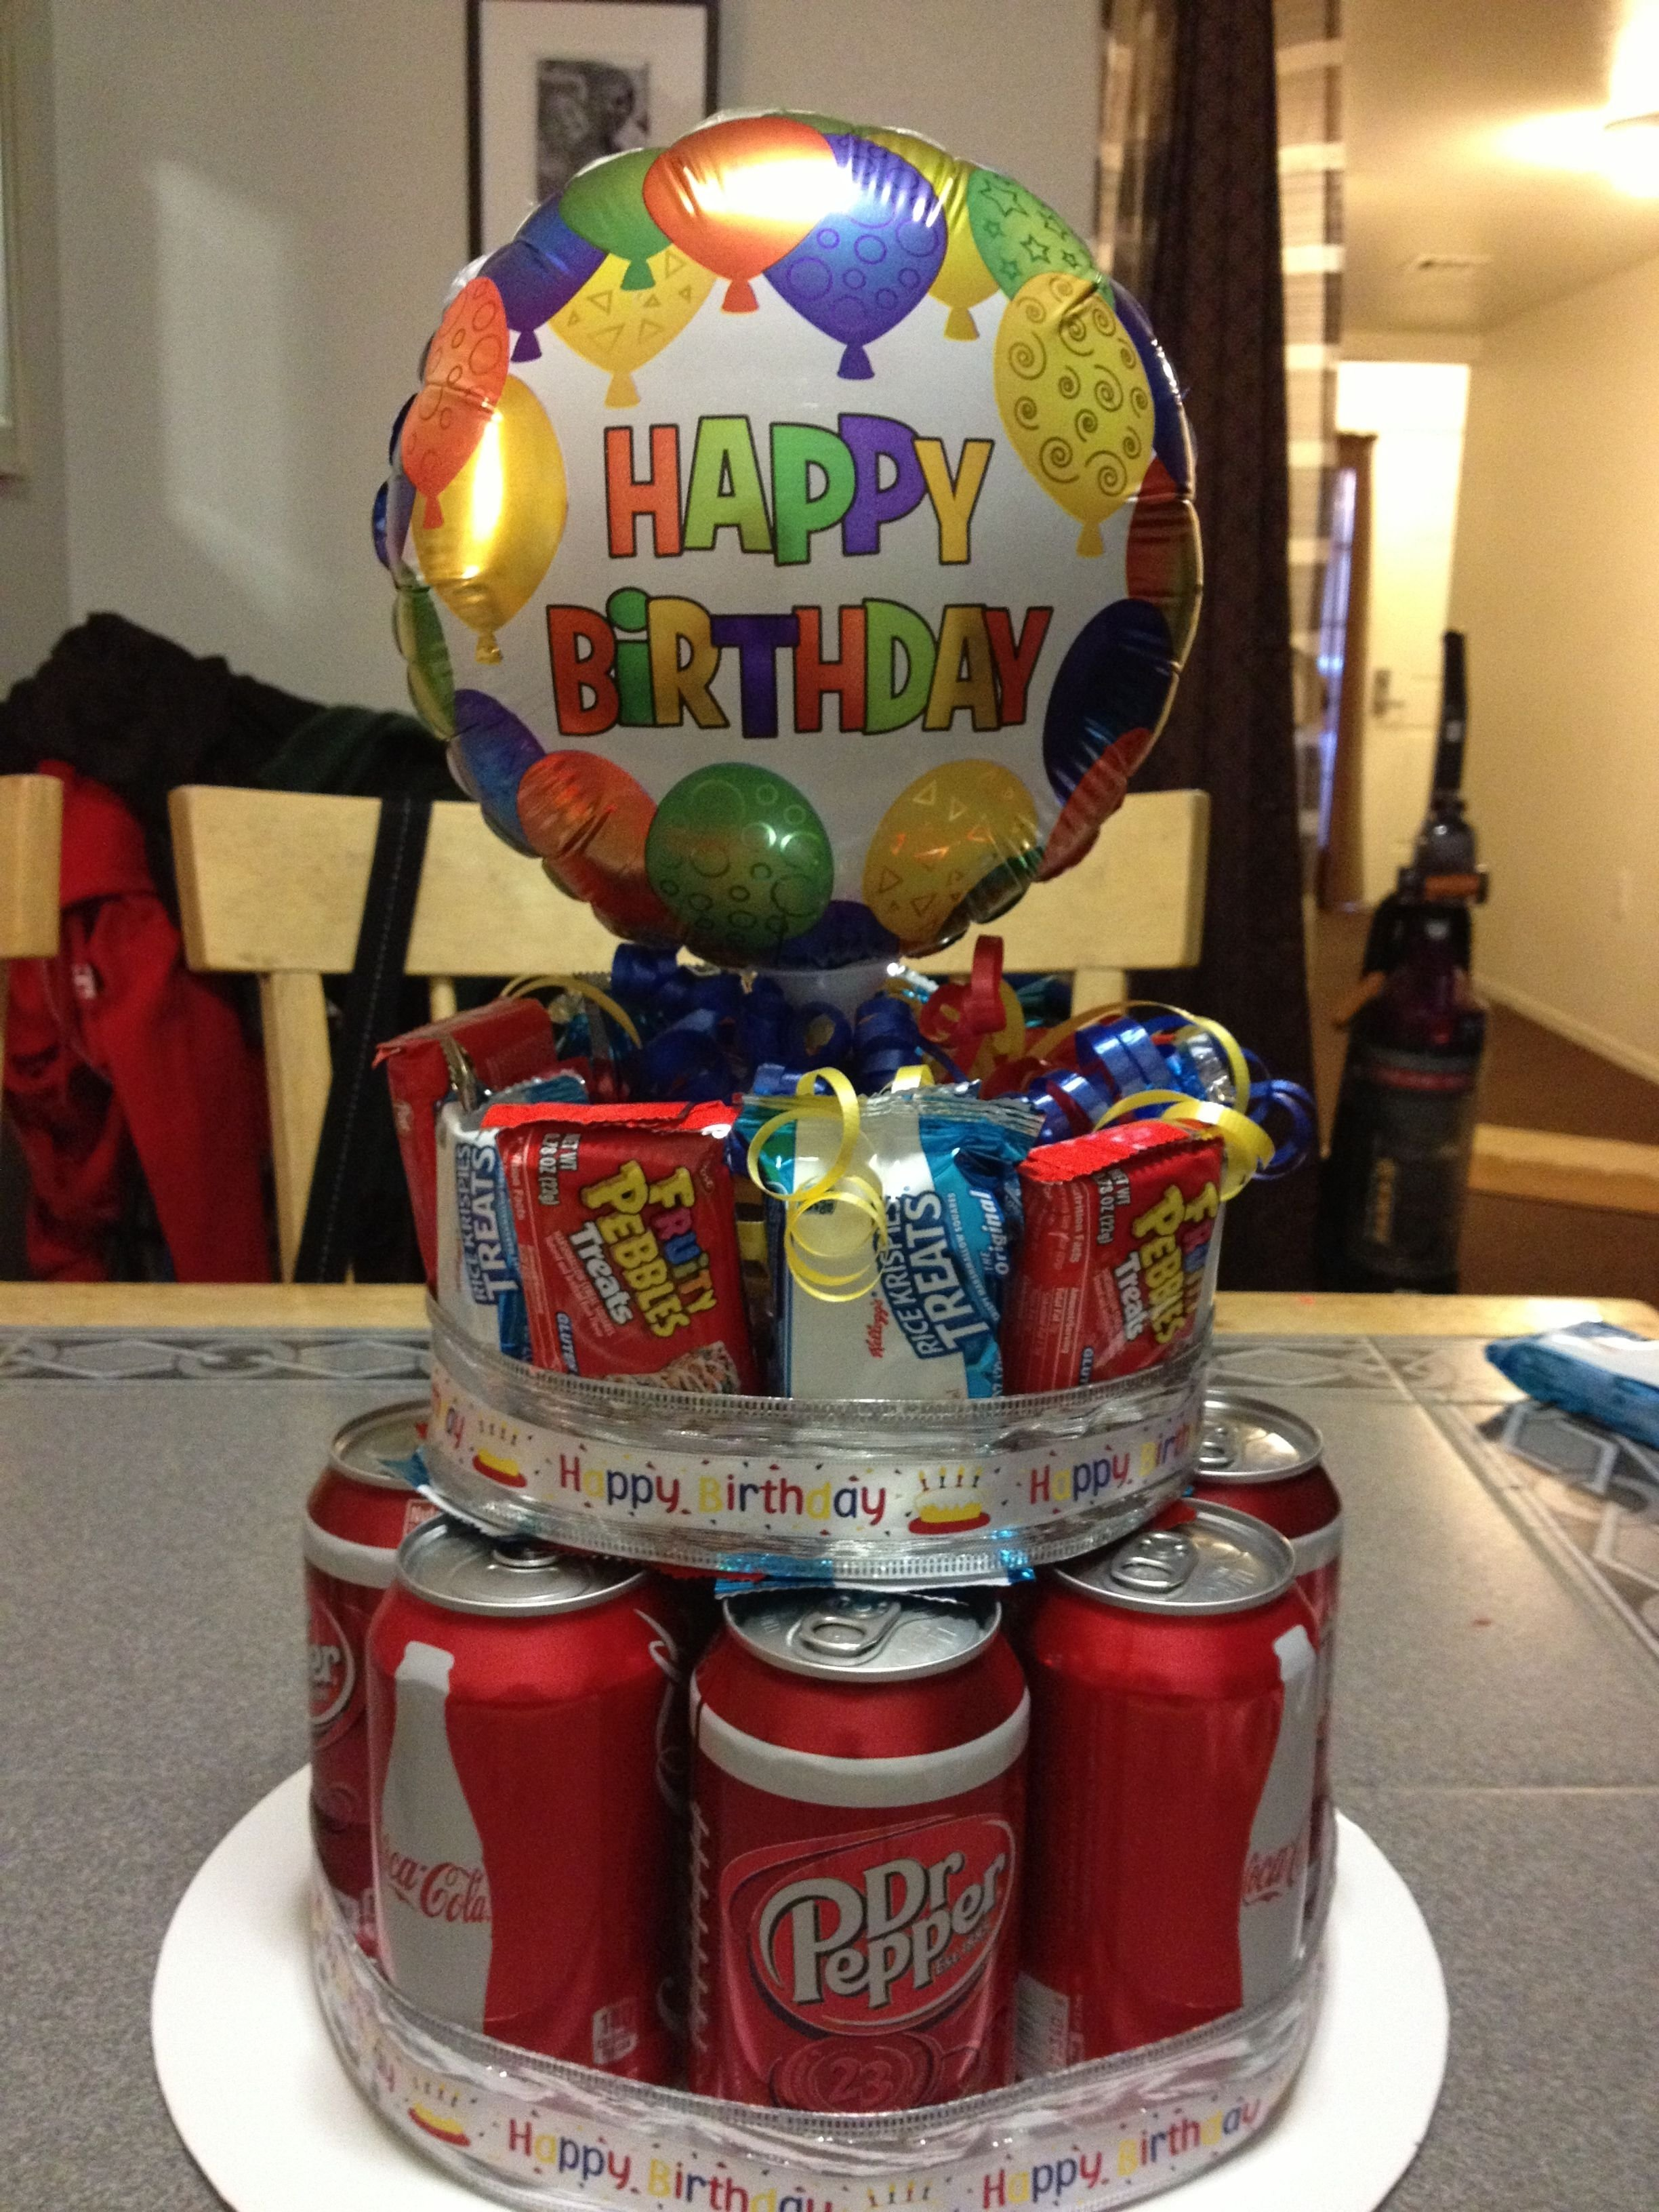 10 Famous Birthday Party Ideas For 16 Year Old Boy pincherrie lechuga on decorations pinterest birthday cakes 1 2020